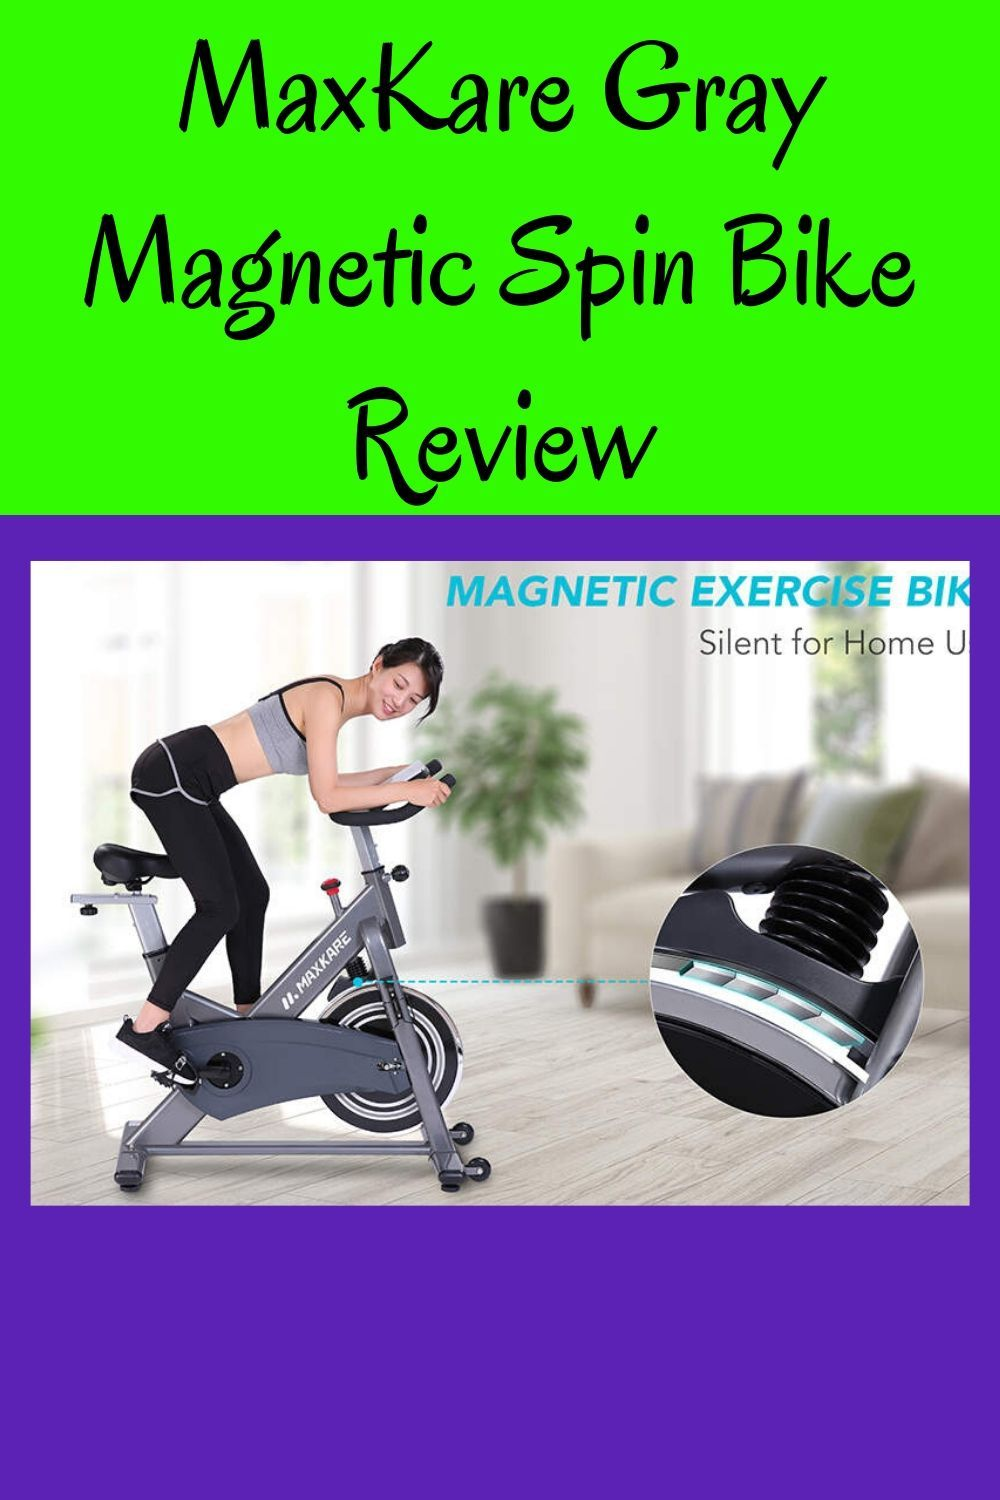 Maxkare Gray Magnetic Spin Bike Review In 2020 Spin Bike Reviews Spin Bikes Bike